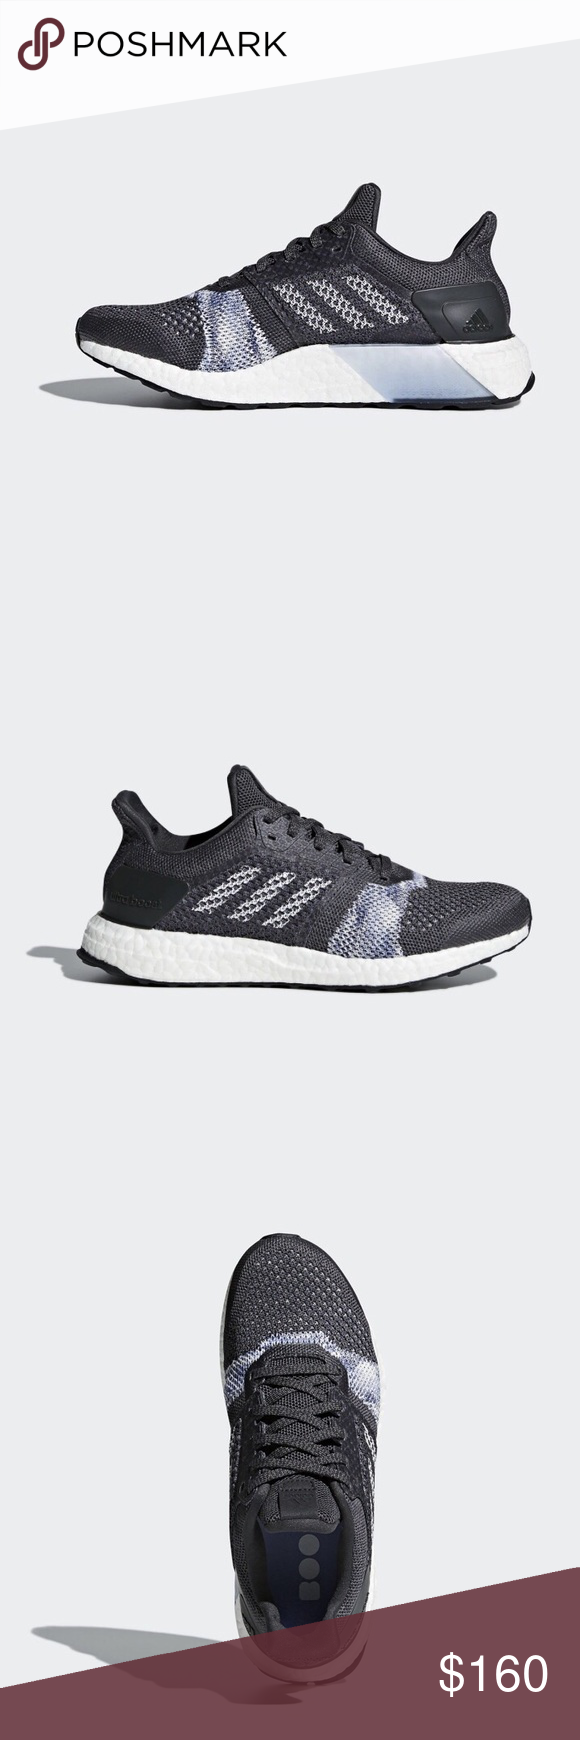 434db36089e3a Adidas Ultra Boost ST w. Brand New. Grey and Blue Amazing colors on these ultra  boosts. Great running shoes. NWT. No box adidas Shoes Sneakers